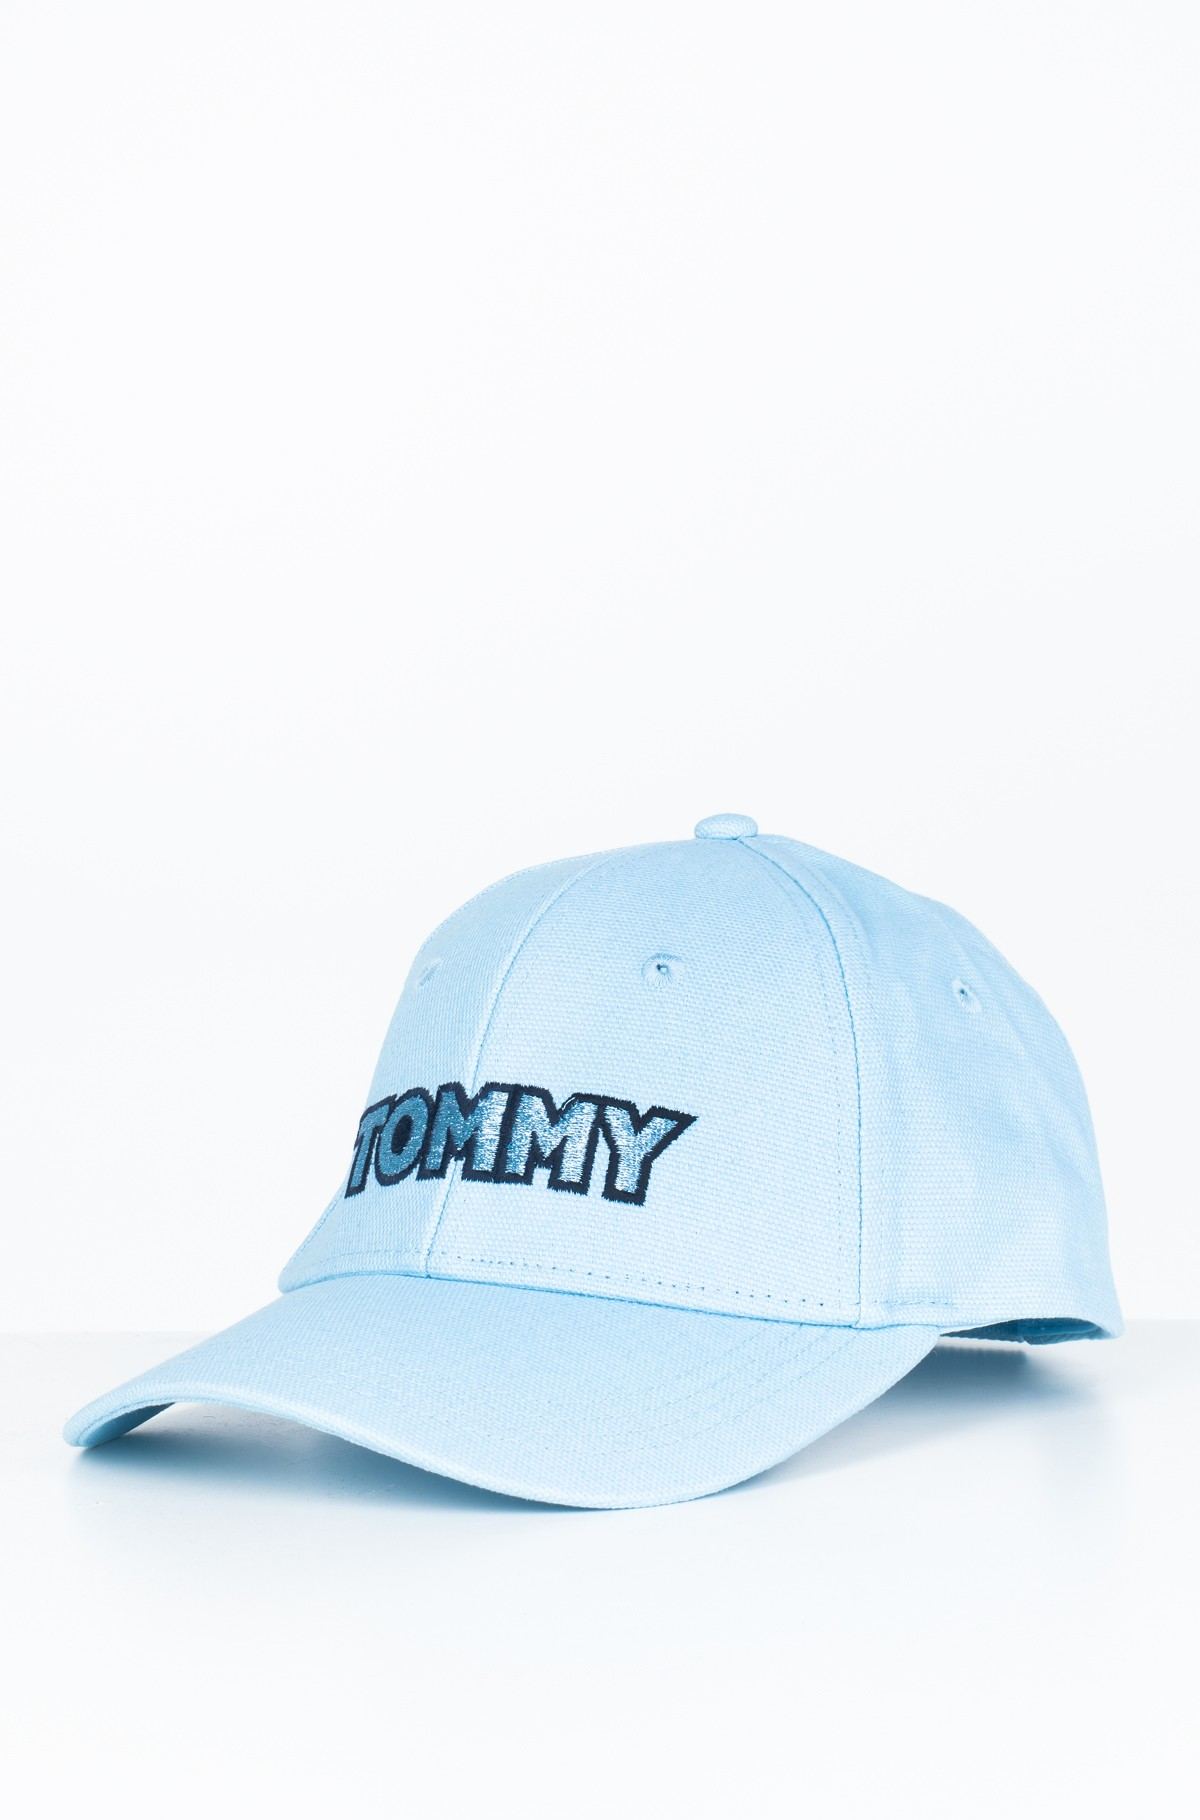 Kepurė su snapeliu  TOMMY PATCH CAP-full-1